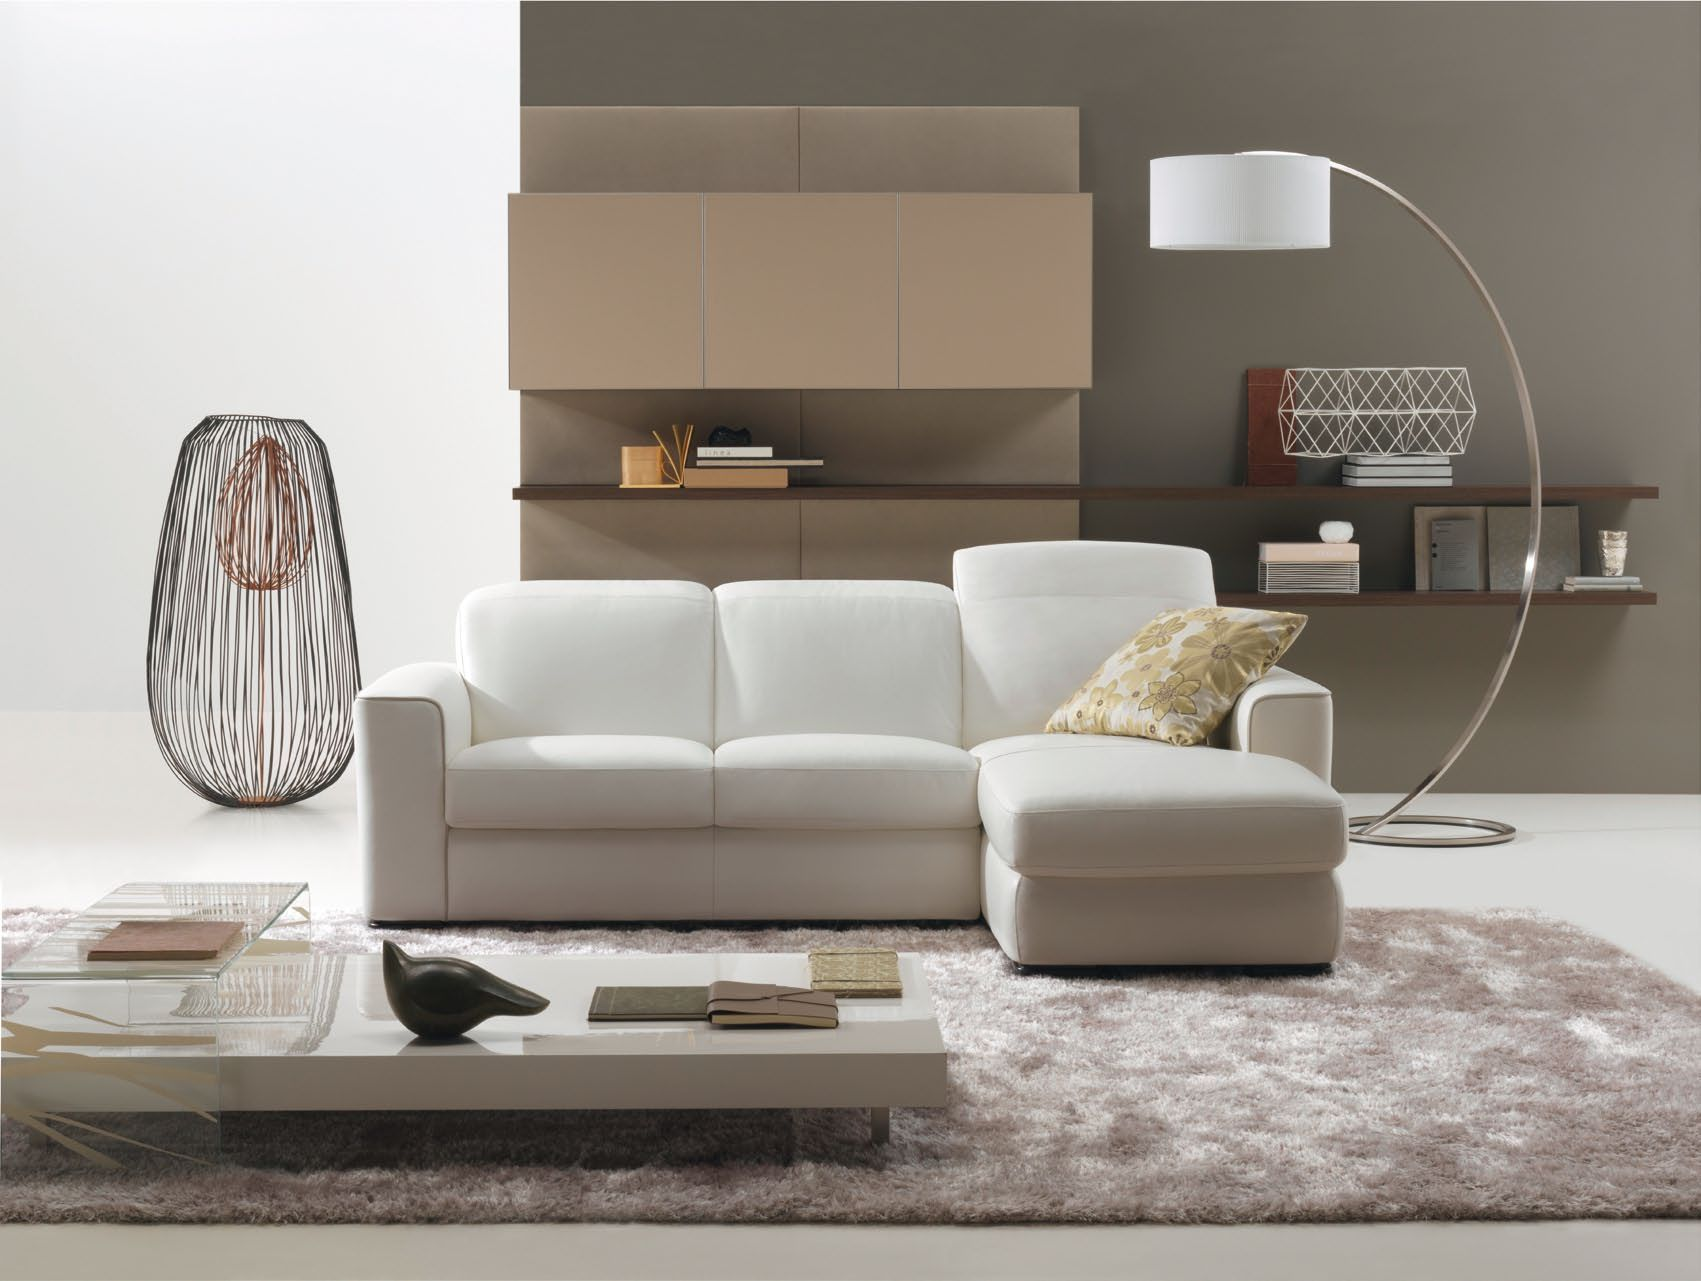 how to use a low coffee table  coffee tables furniture  tables  - how to use a low coffee table  coffee tables furniture